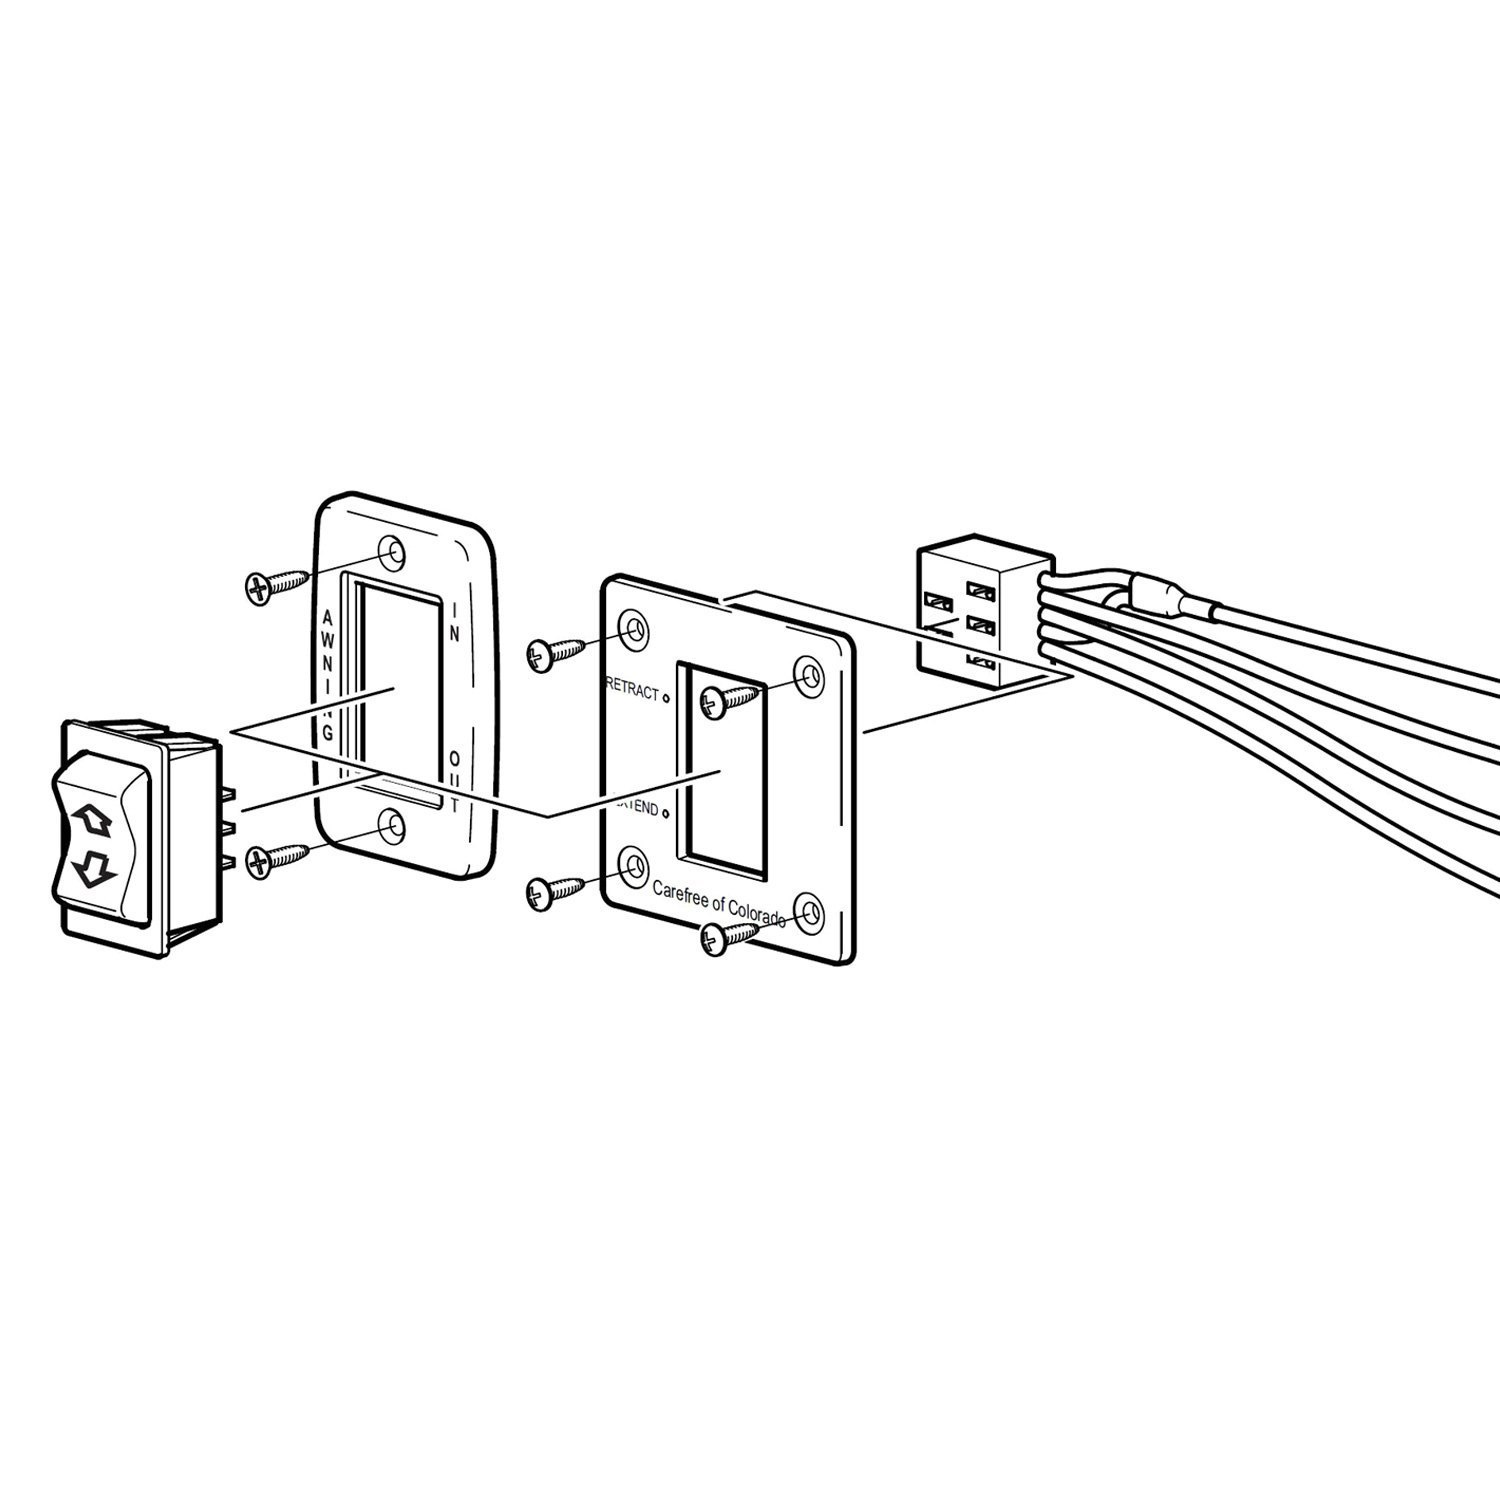 Carefree Awning Switch Wiring Diagram